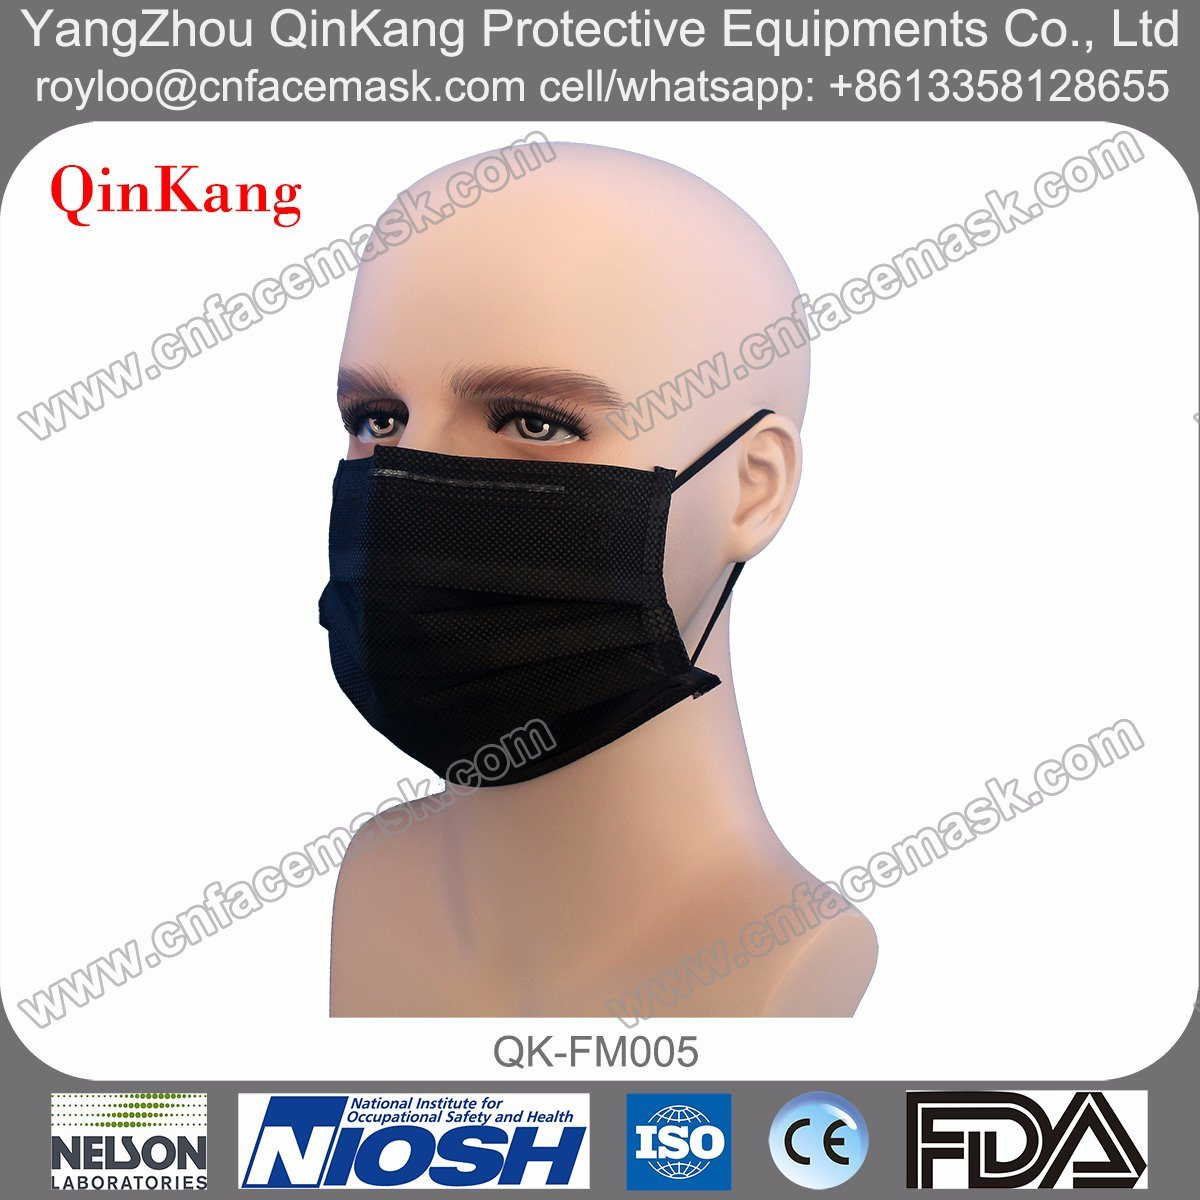 Medical Disposable Active Carbon Surgical Mask, Face Mask, Disposable Face Mask